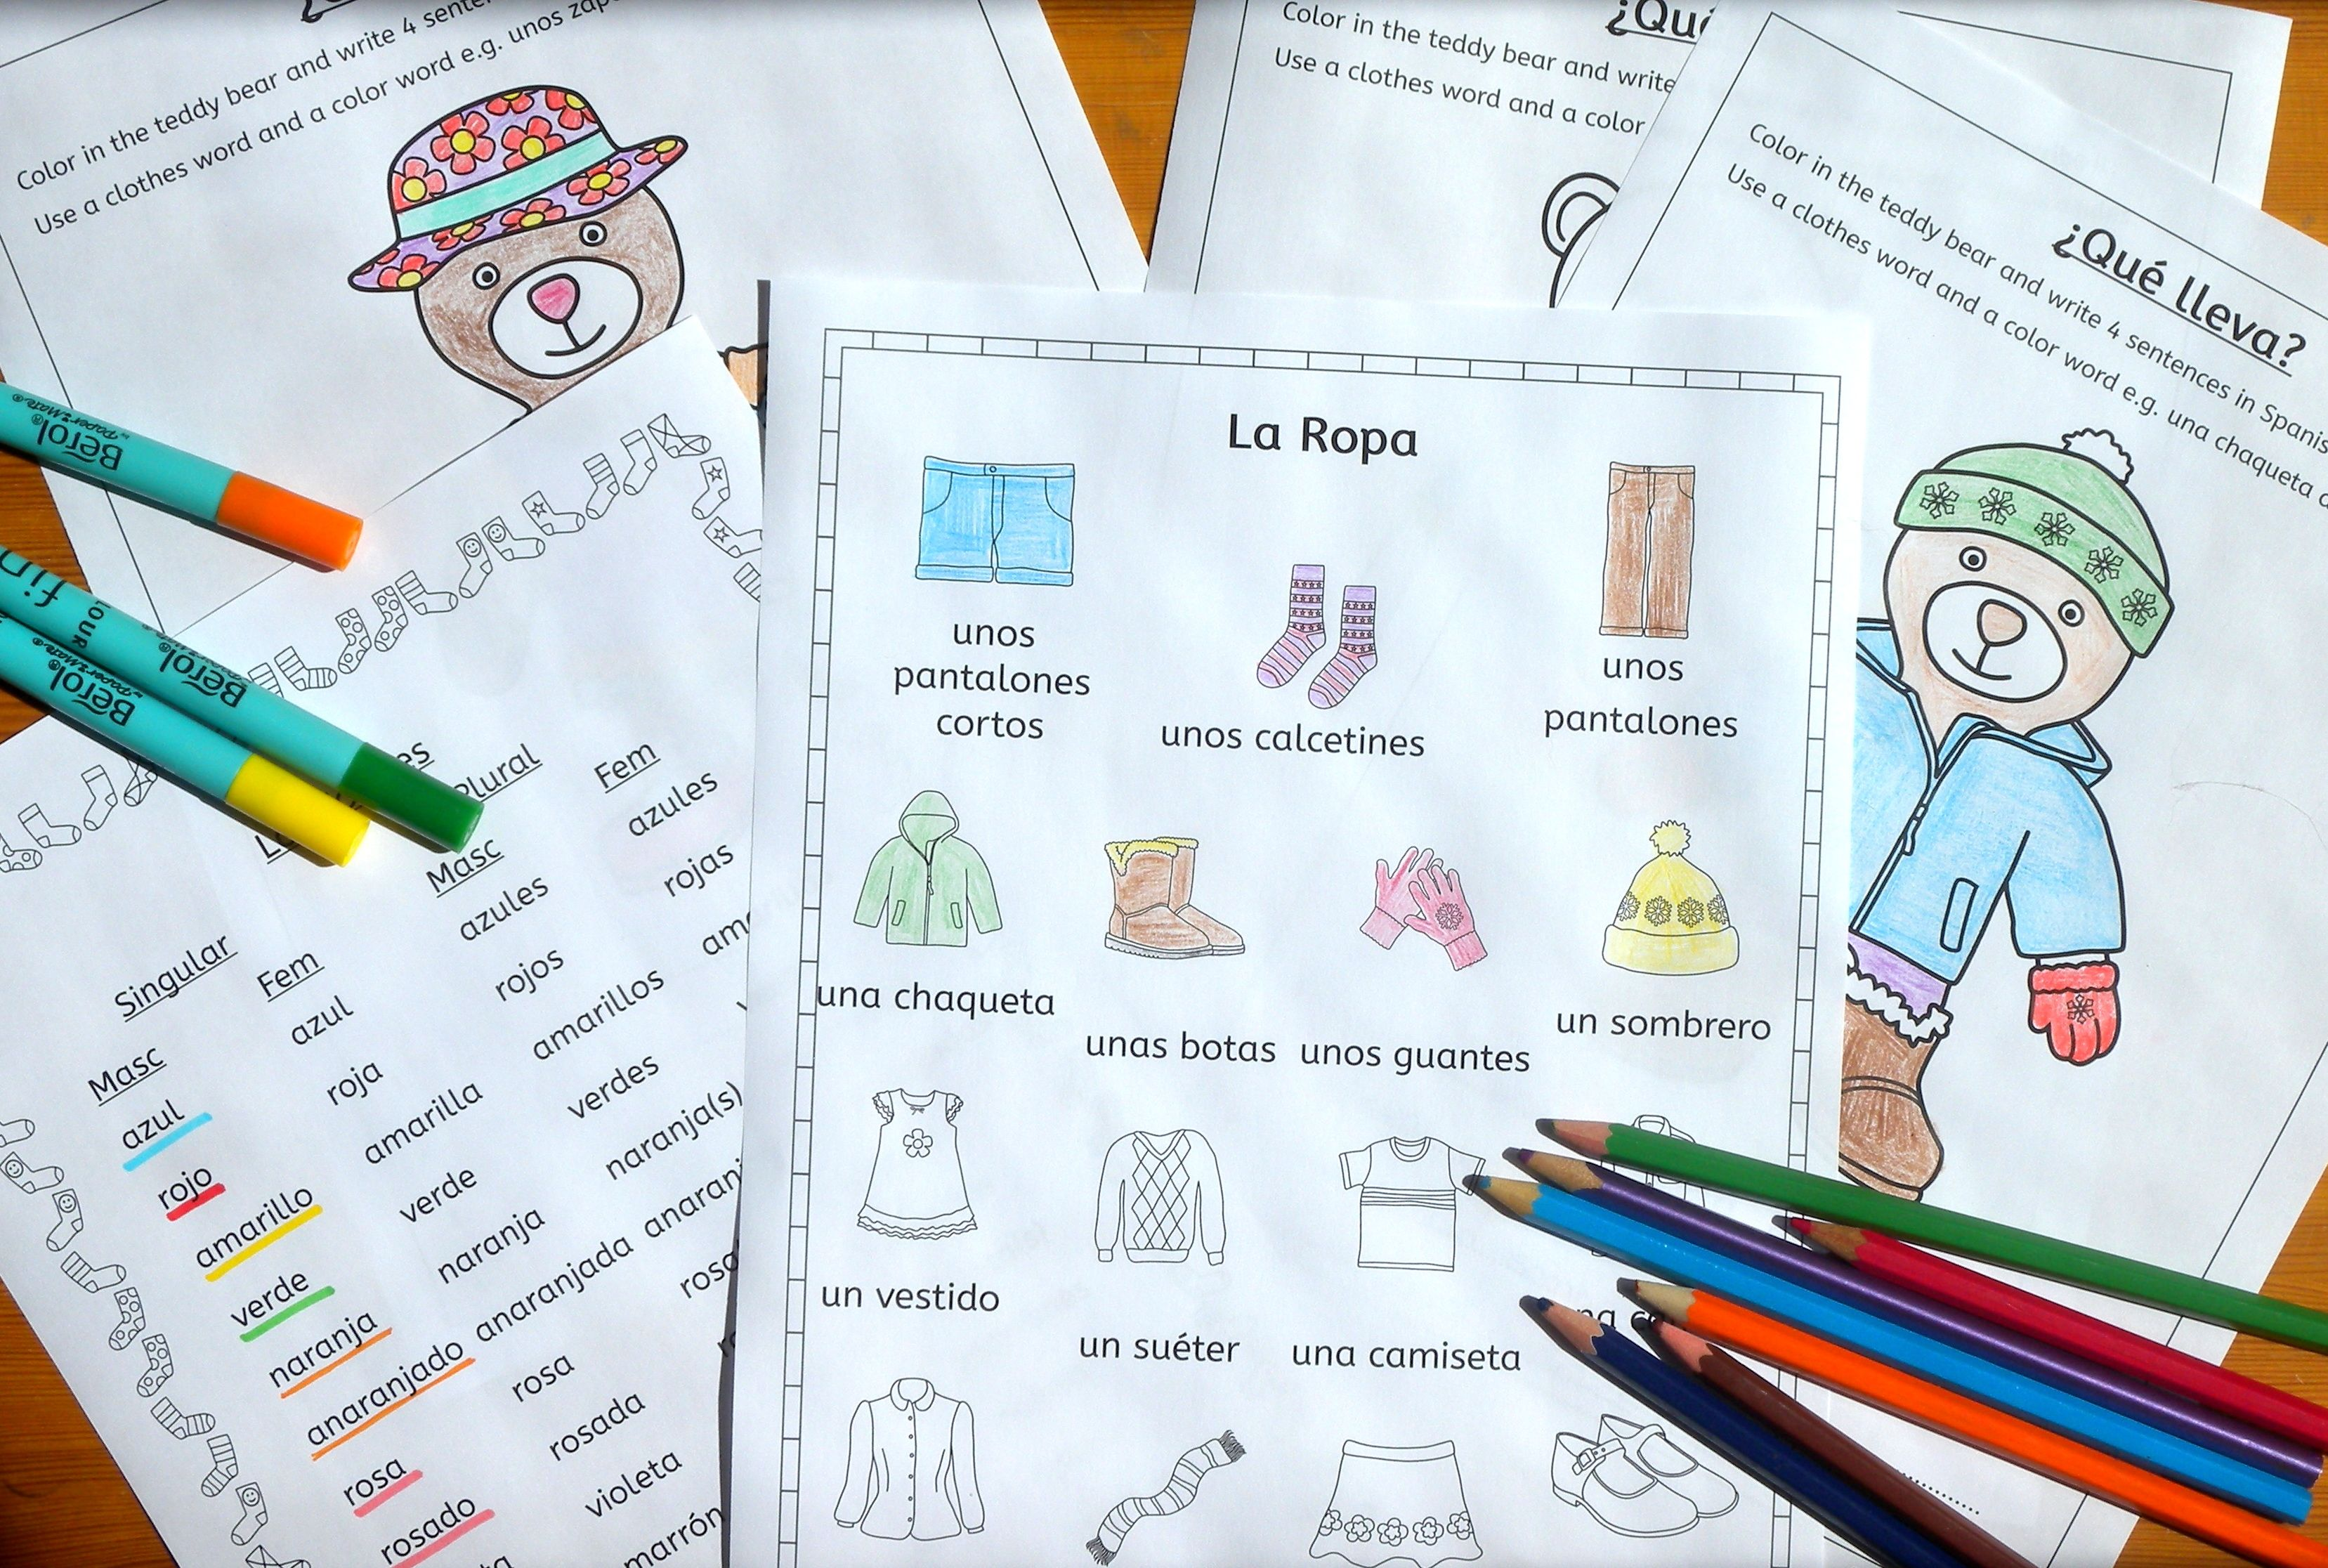 Spanish Clothing And Colors